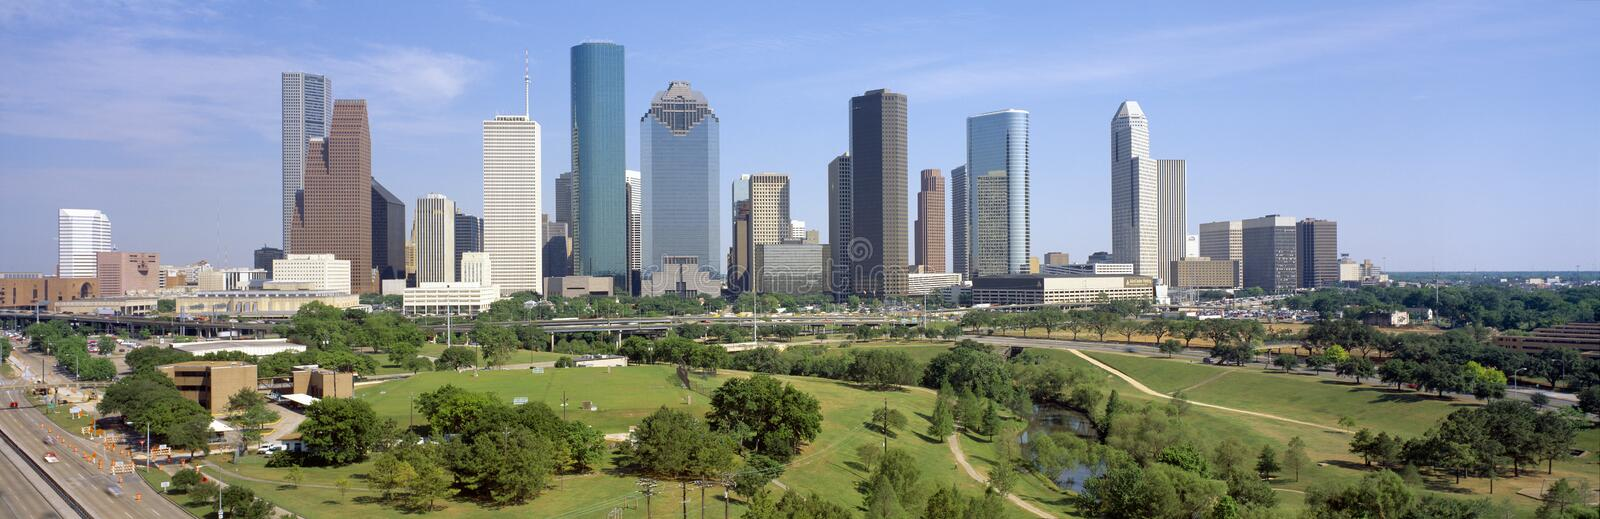 Skyline de Houston fotos de stock royalty free